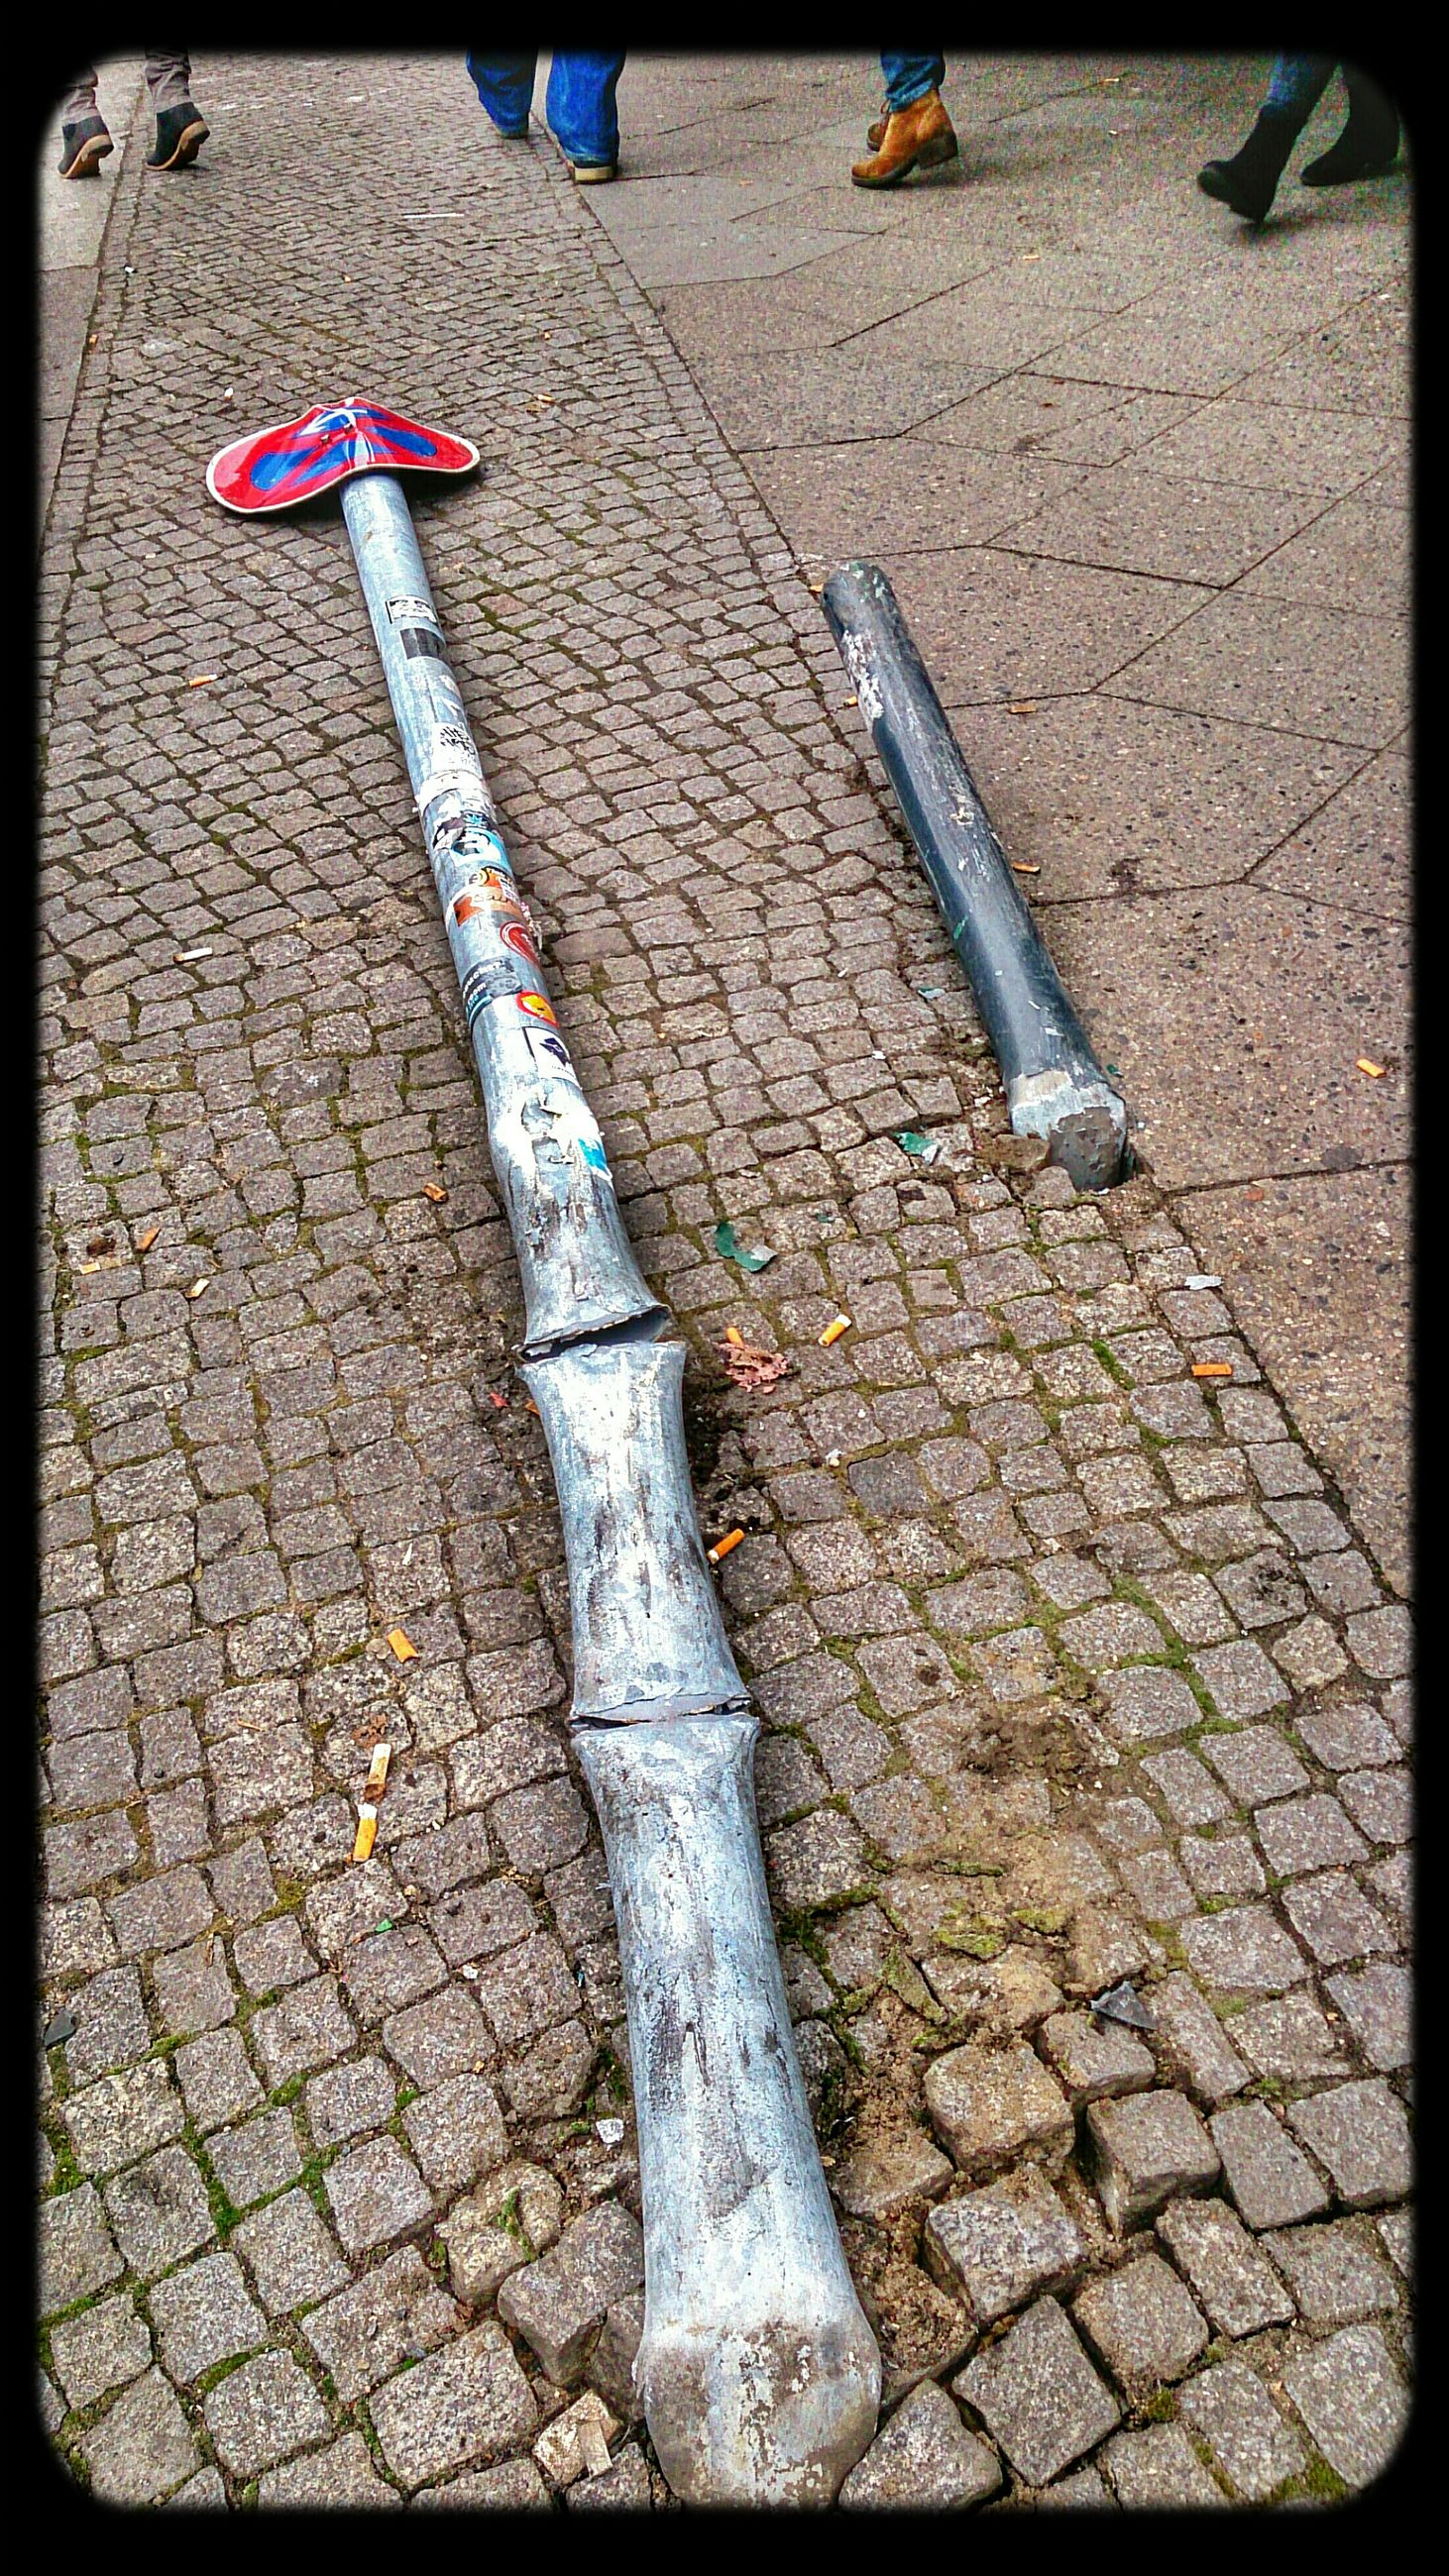 transfer print, auto post production filter, high angle view, day, street, outdoors, sunlight, red, no people, close-up, pole, shadow, metal, guidance, sidewalk, ground, still life, road, safety, cobblestone